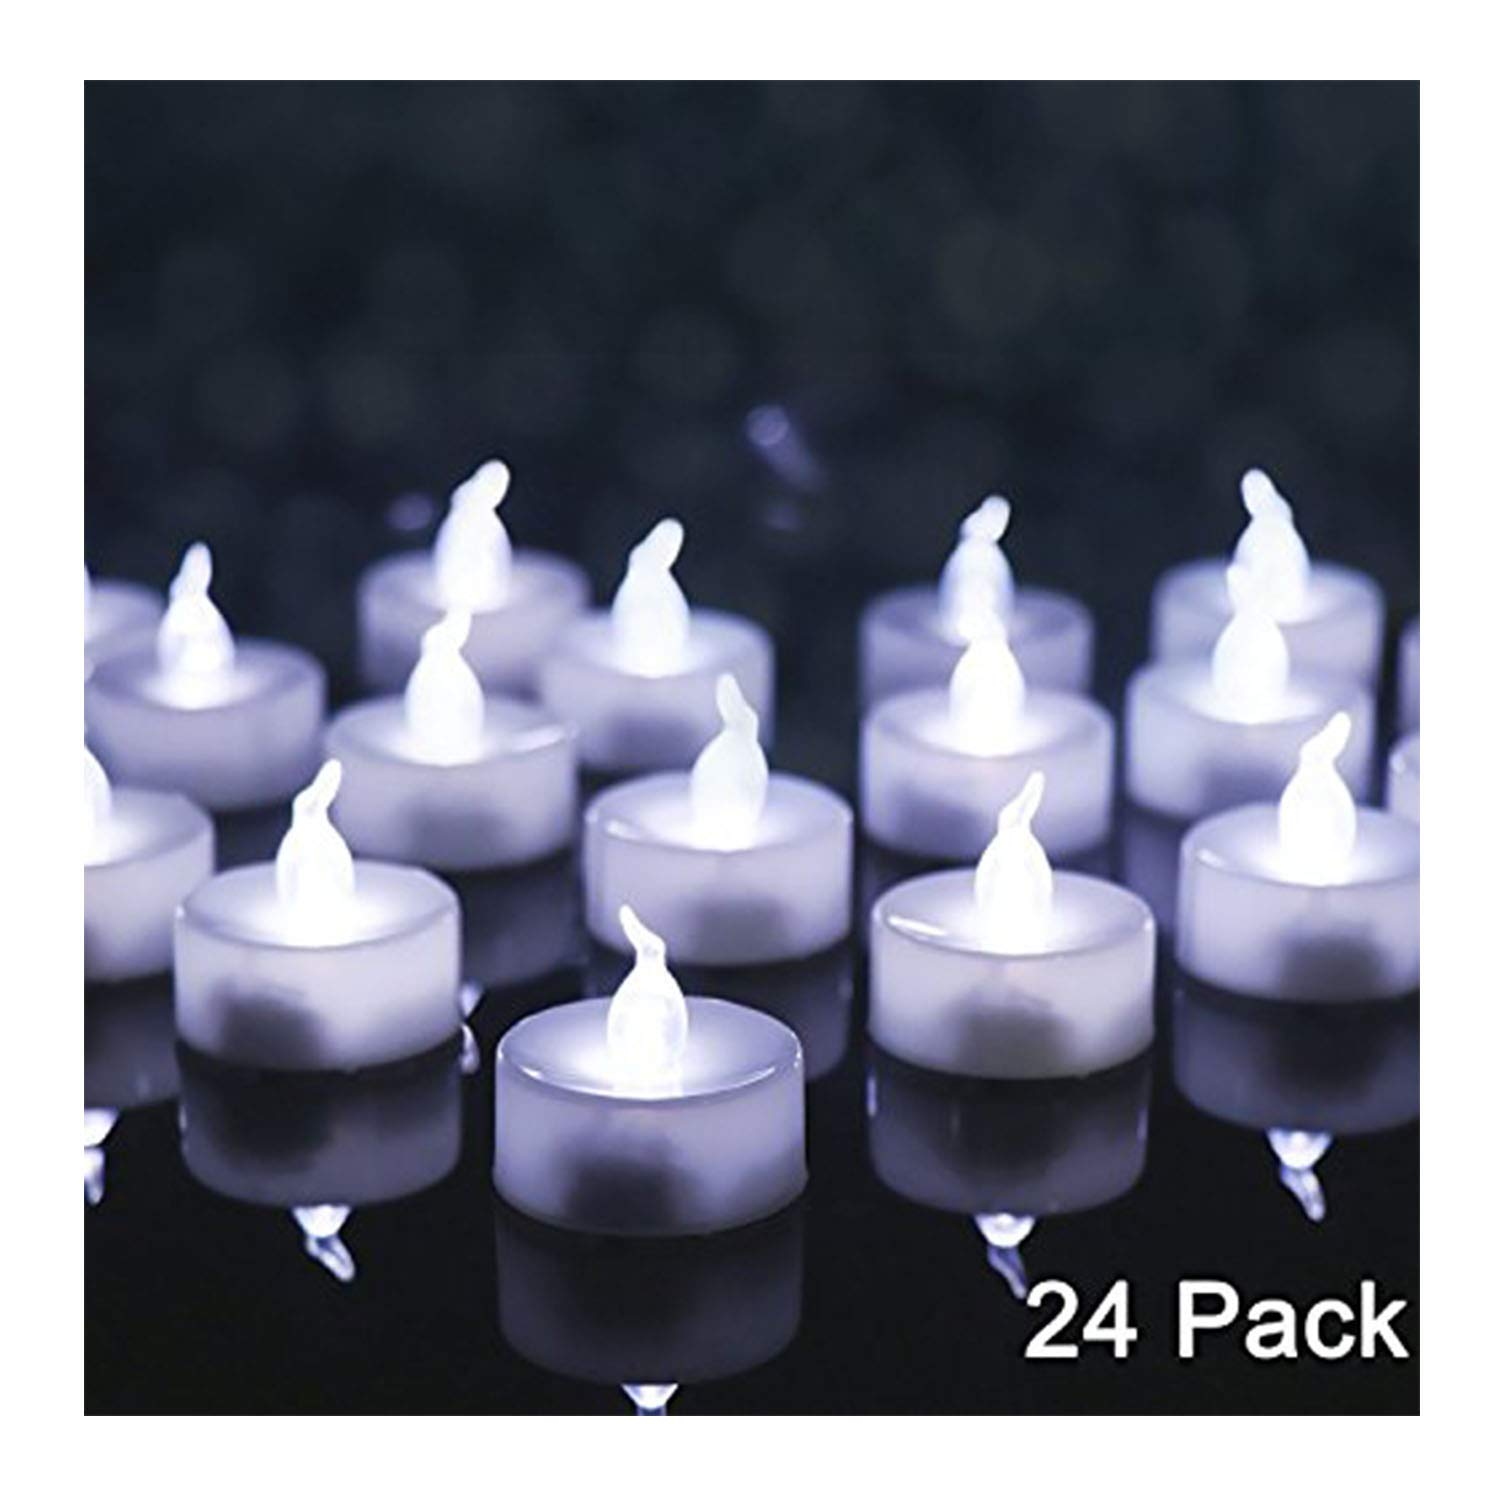 OMGAI 24 PCS LED Tea lights Candles Battery-Powered Small Bright Flickering Flameless Candles for Home Decoration White COMINHKPR77623